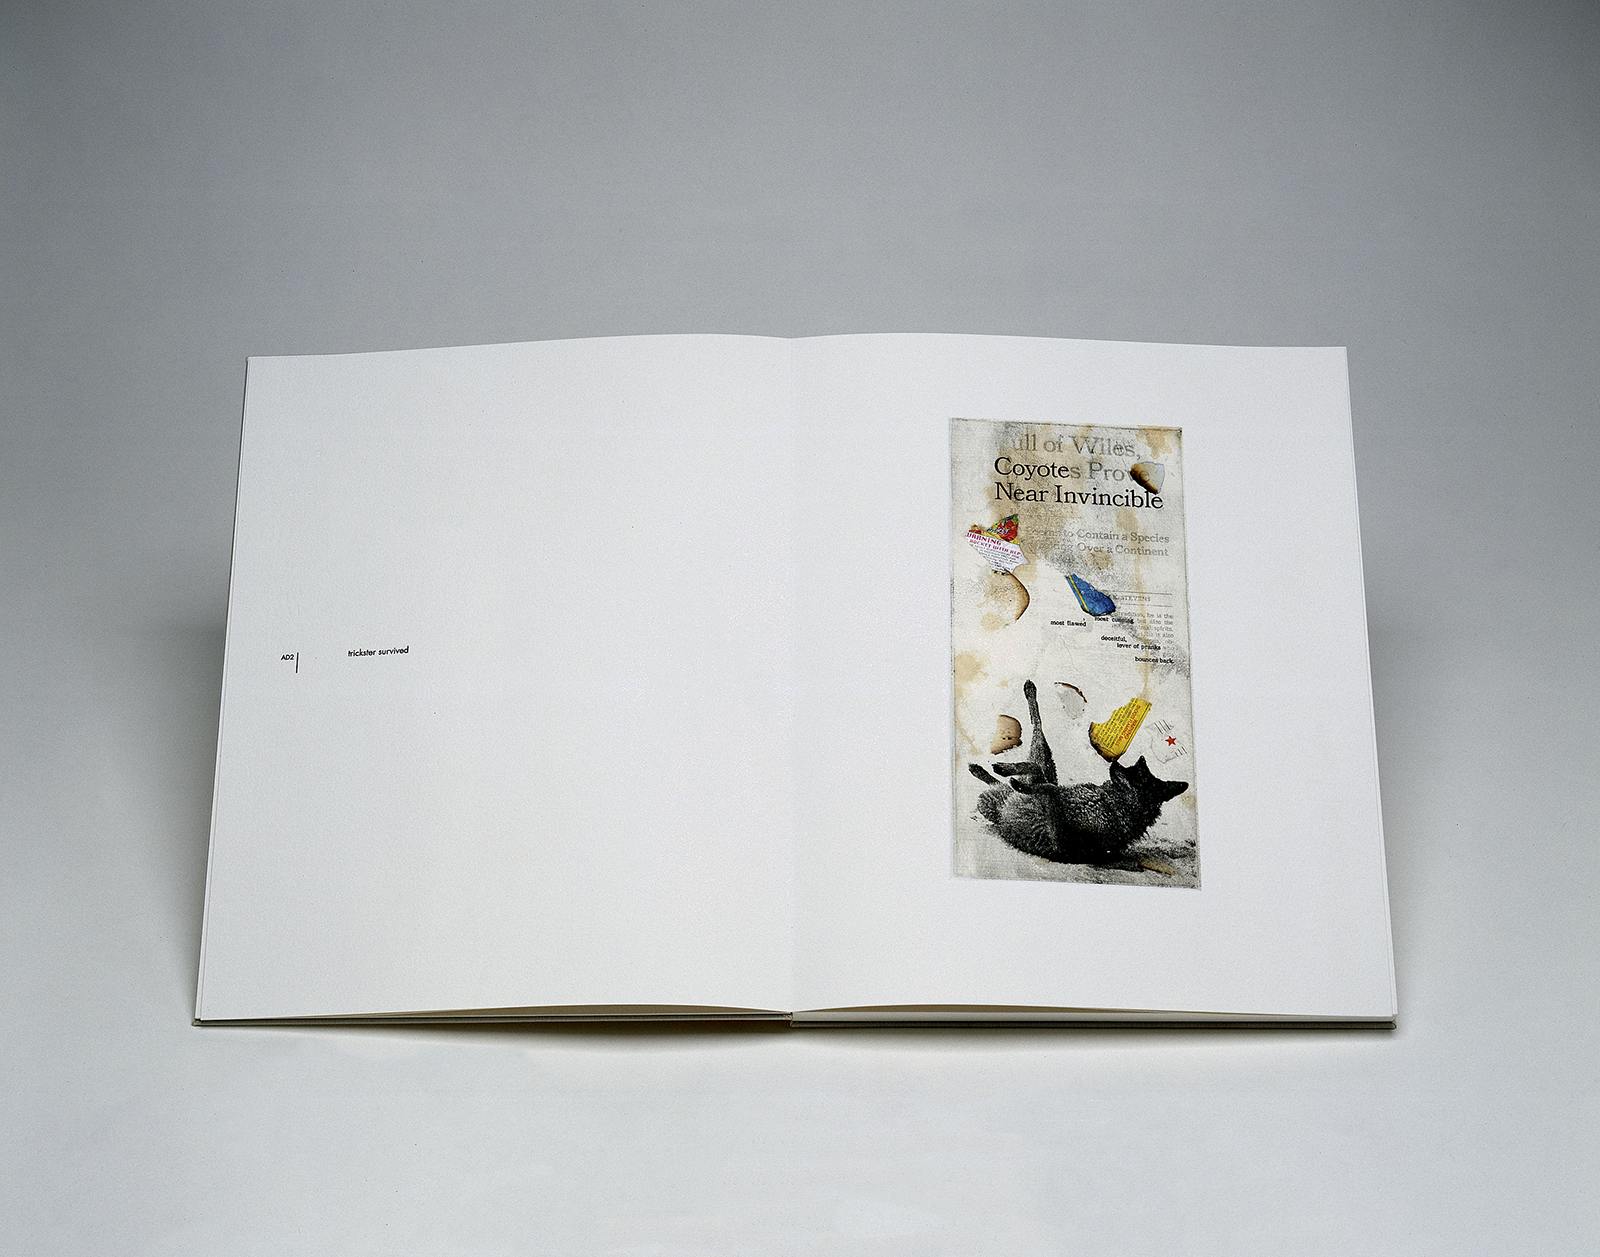 """A photo of a spread from Susan Goethel Campbell's artists' book which shows, on the right page, an image of a coyote on its back playfully, collaged over some newspaper text/headlines (""""Coyotes Prove Near Invincible"""") and some collages scraps. On the left page text reads """"trickster survived."""""""